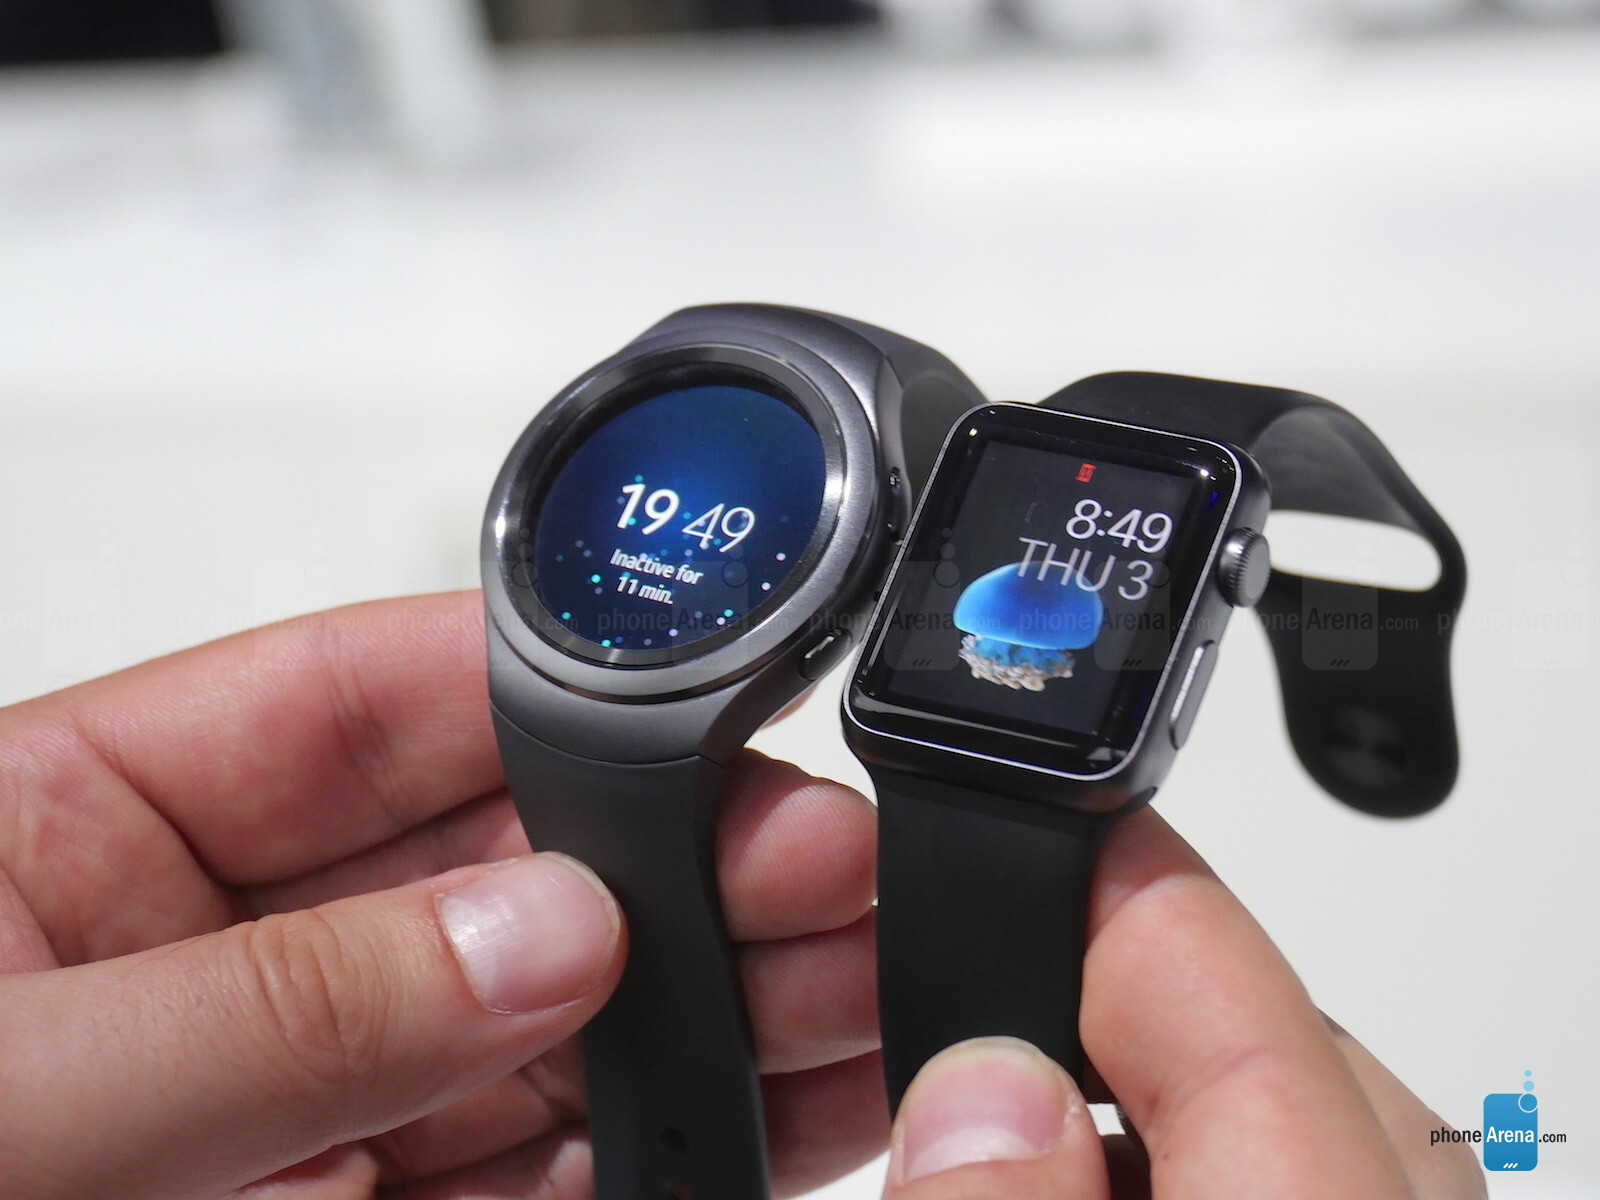 samaung gear s2 does support pdf